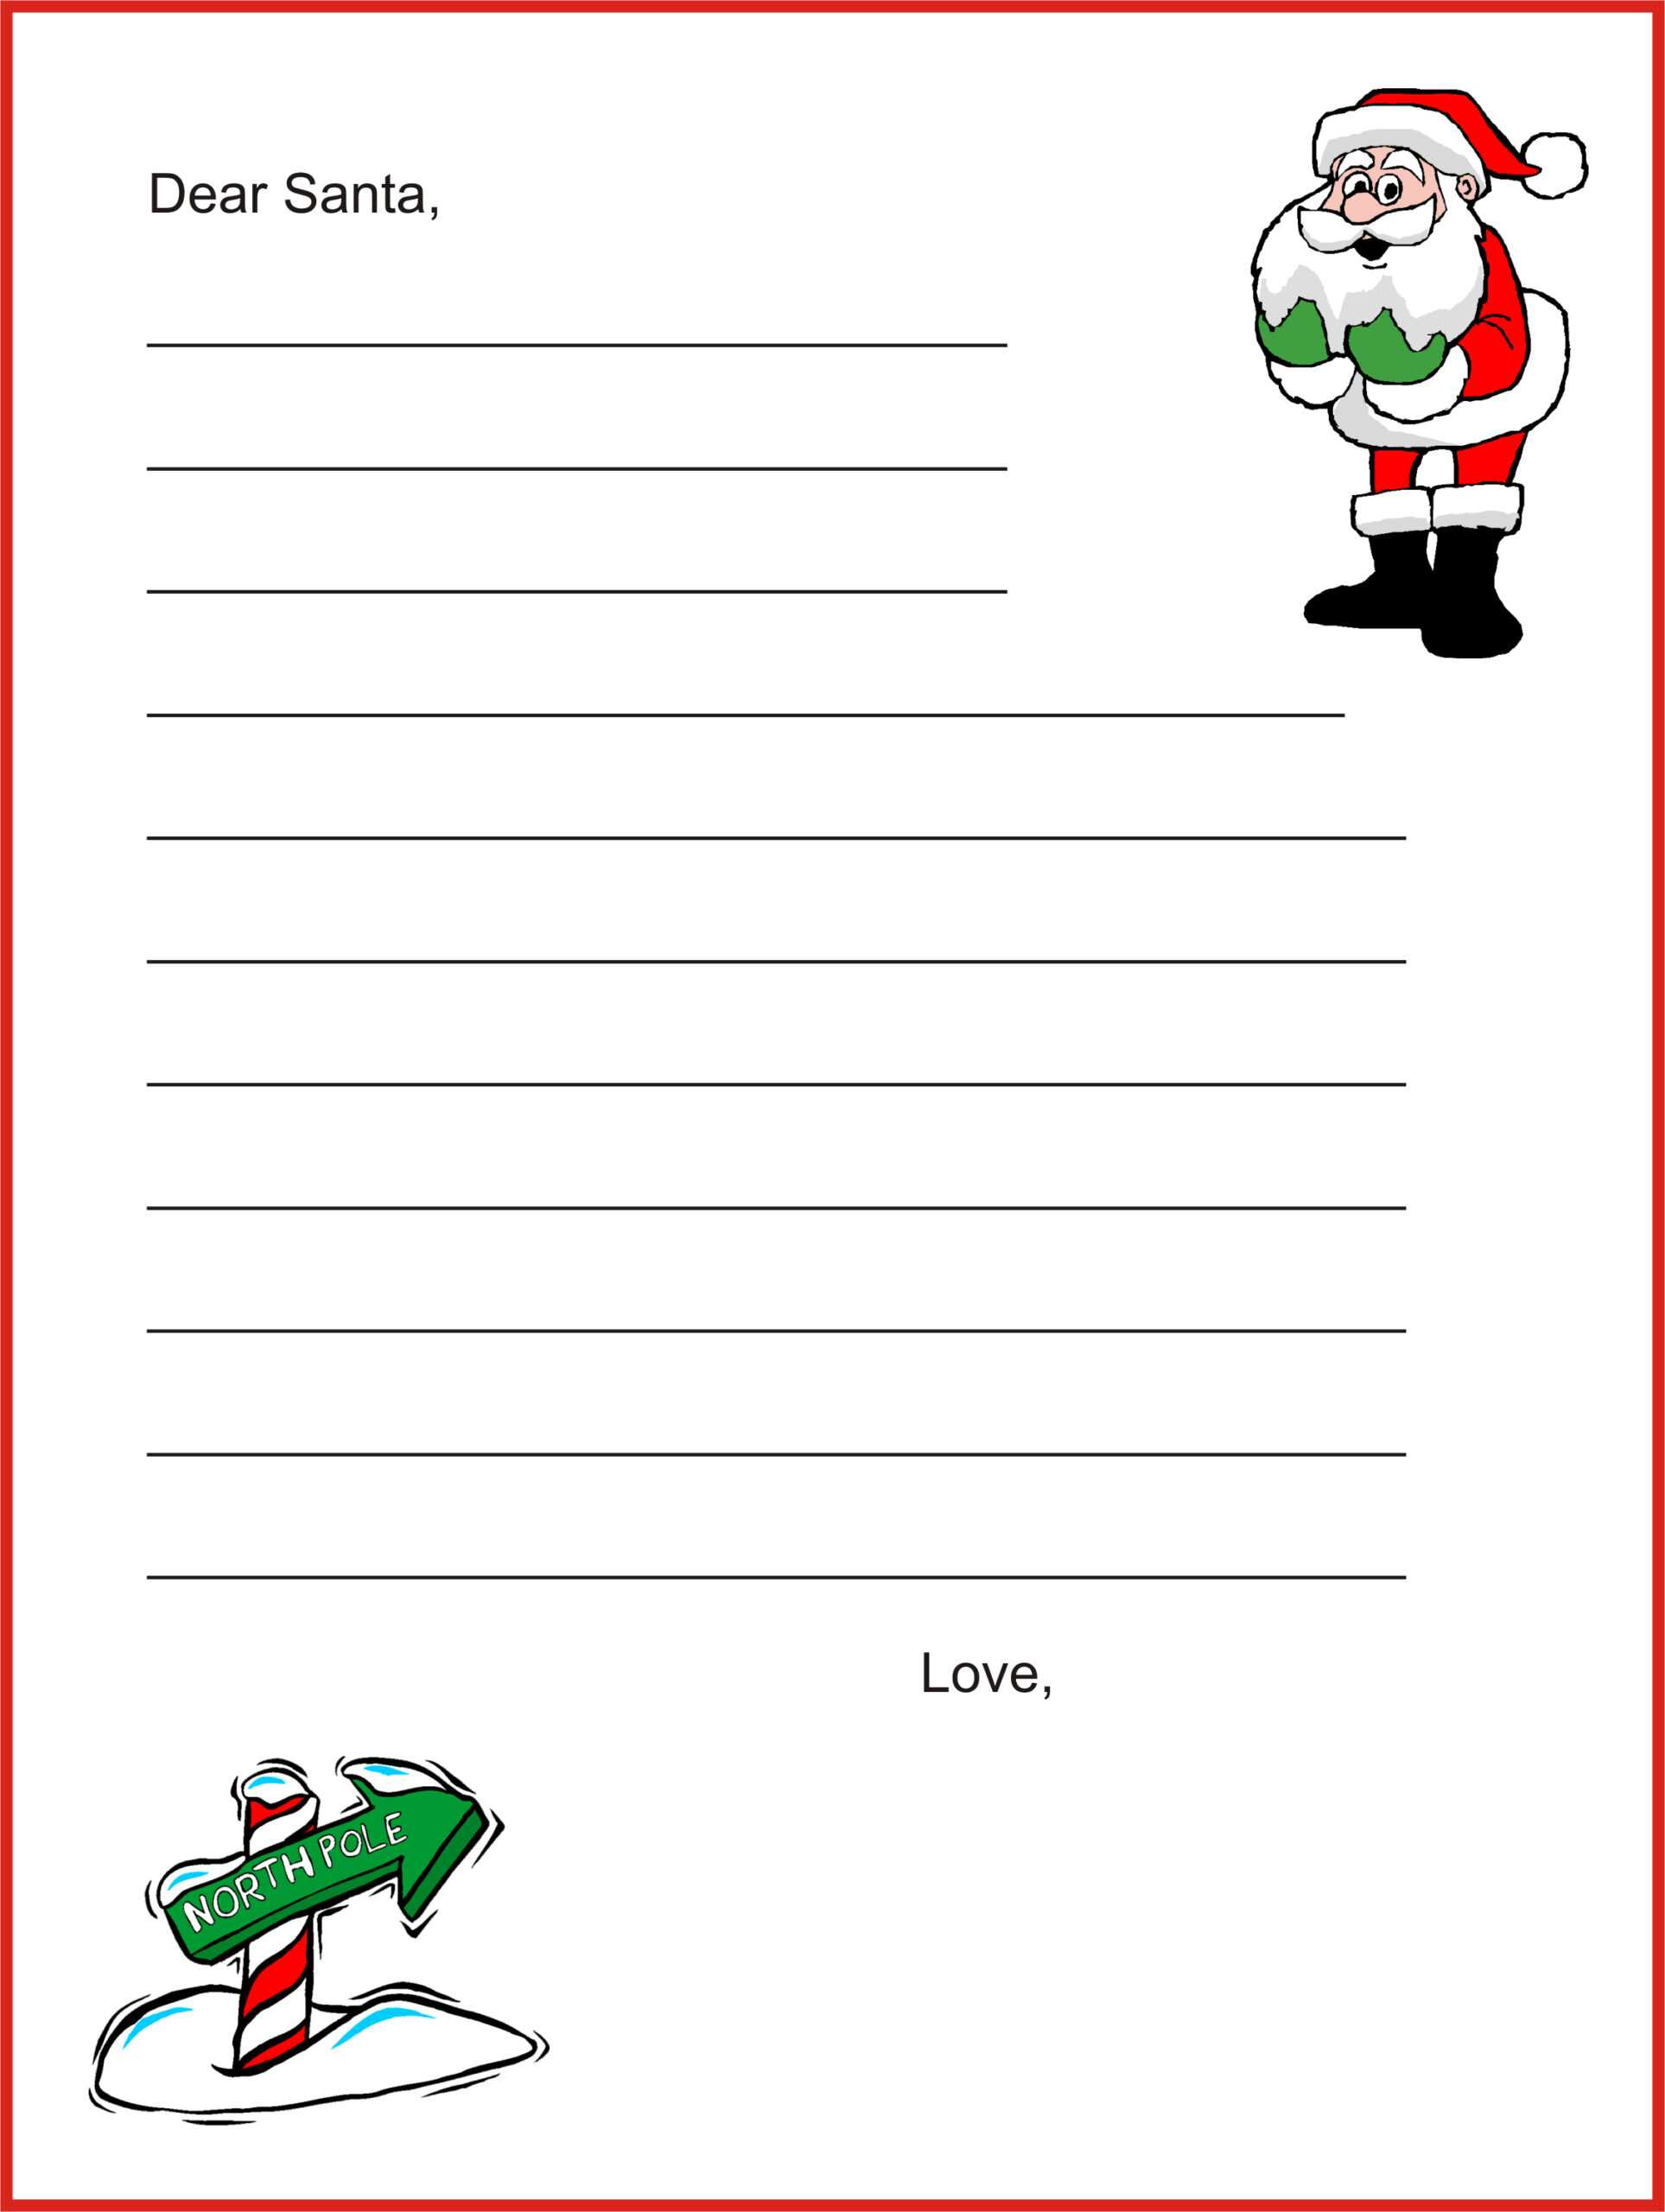 Dear Santa Letter | For Christmas Letter Templates Free Printable